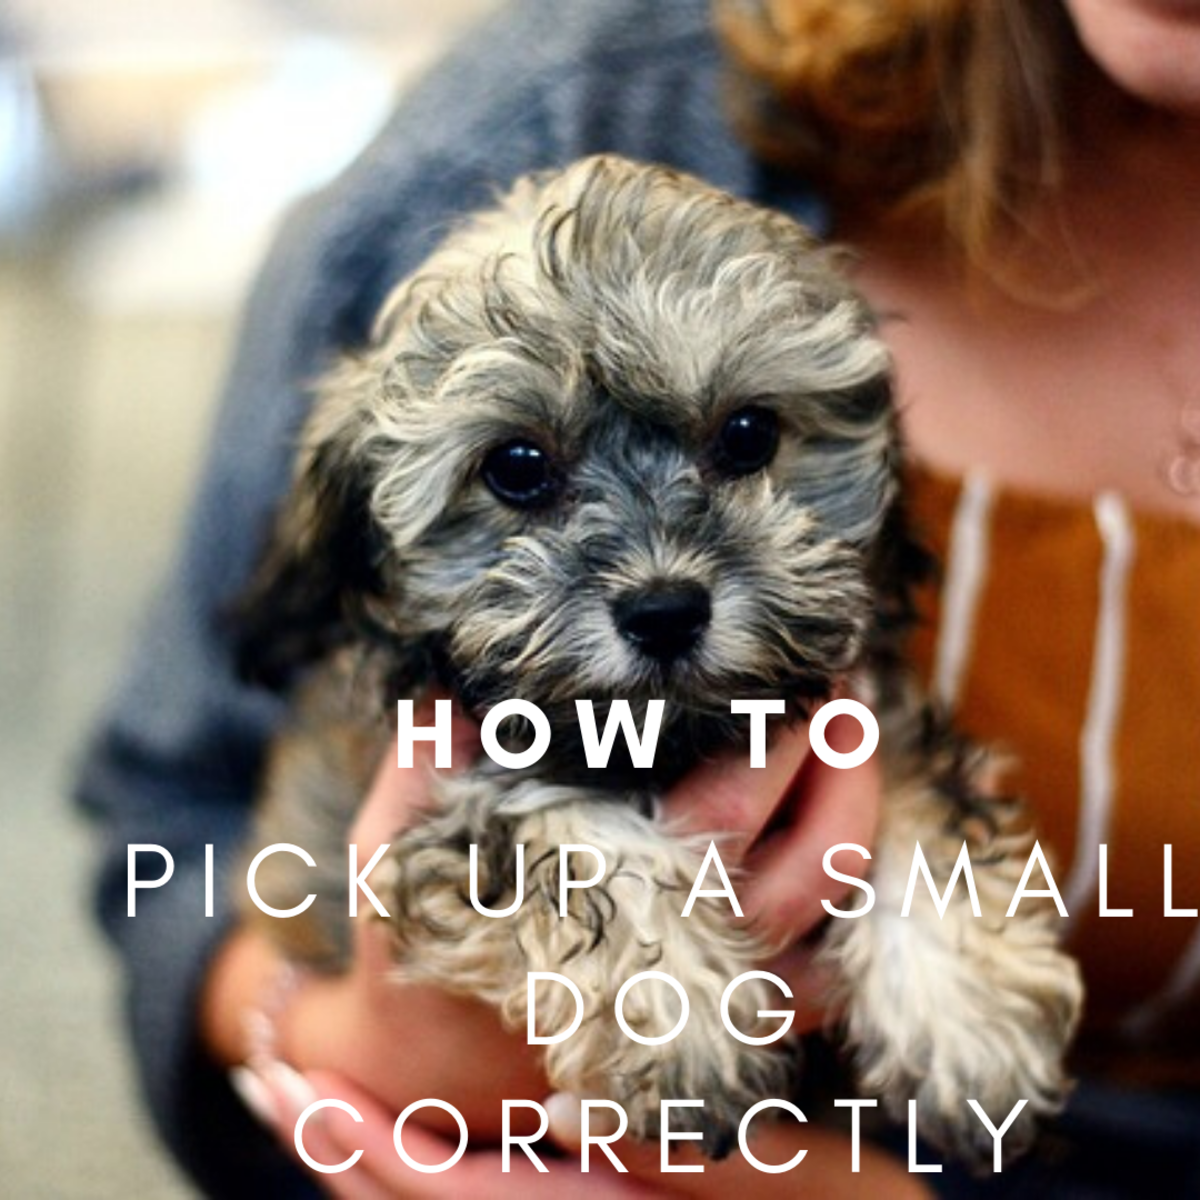 how-to-correctly-pick-up-a-small-dog-or-puppy